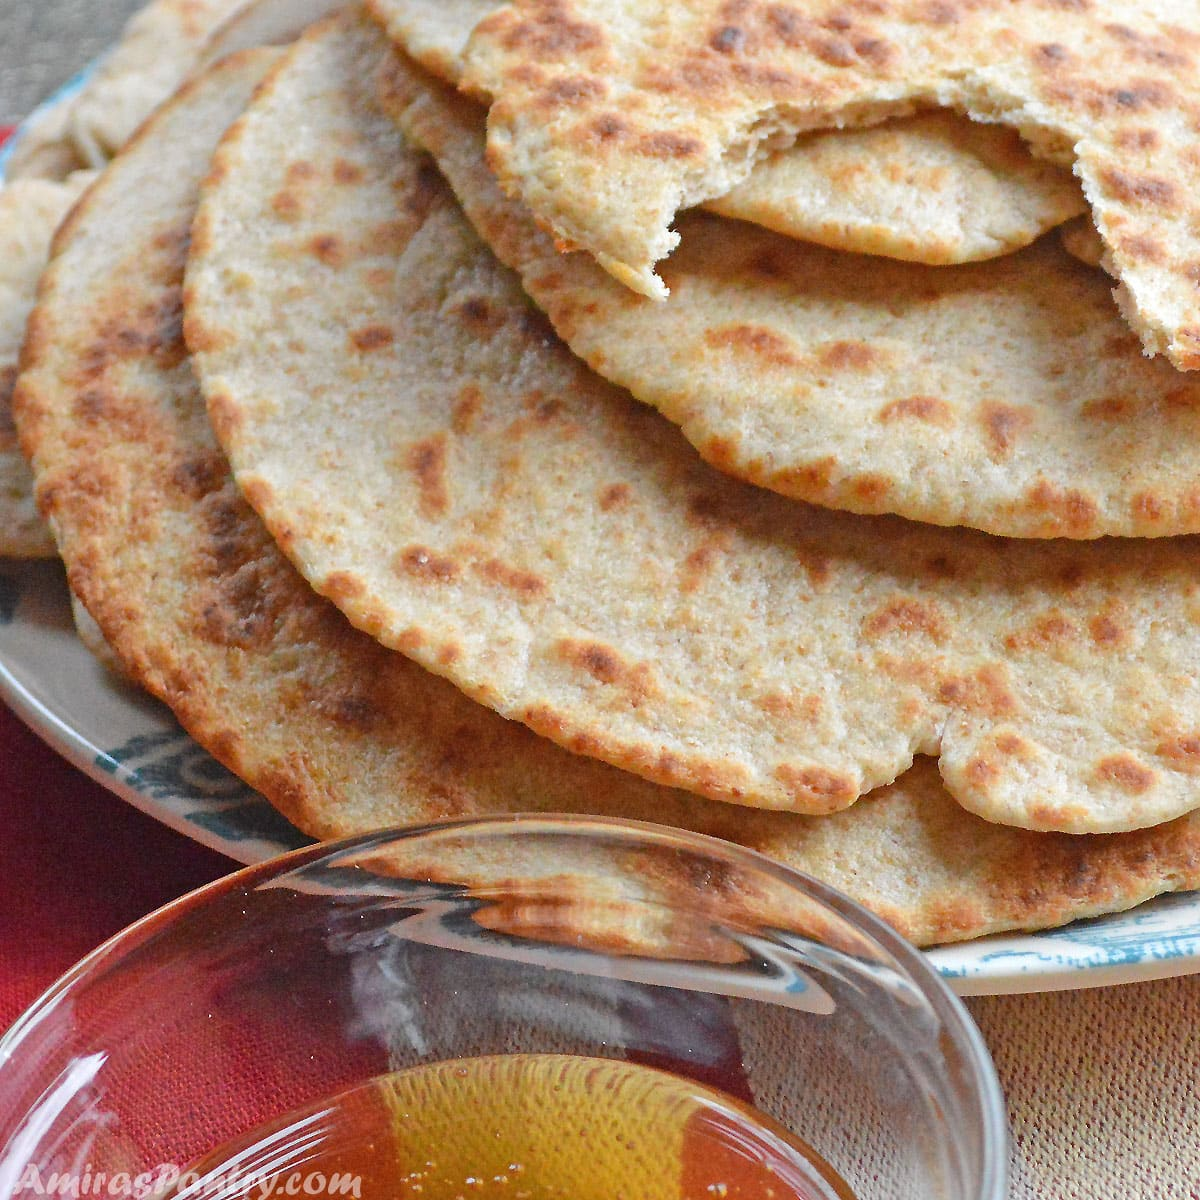 A stack of flatbread on a blue plate with a small bowl of honey.